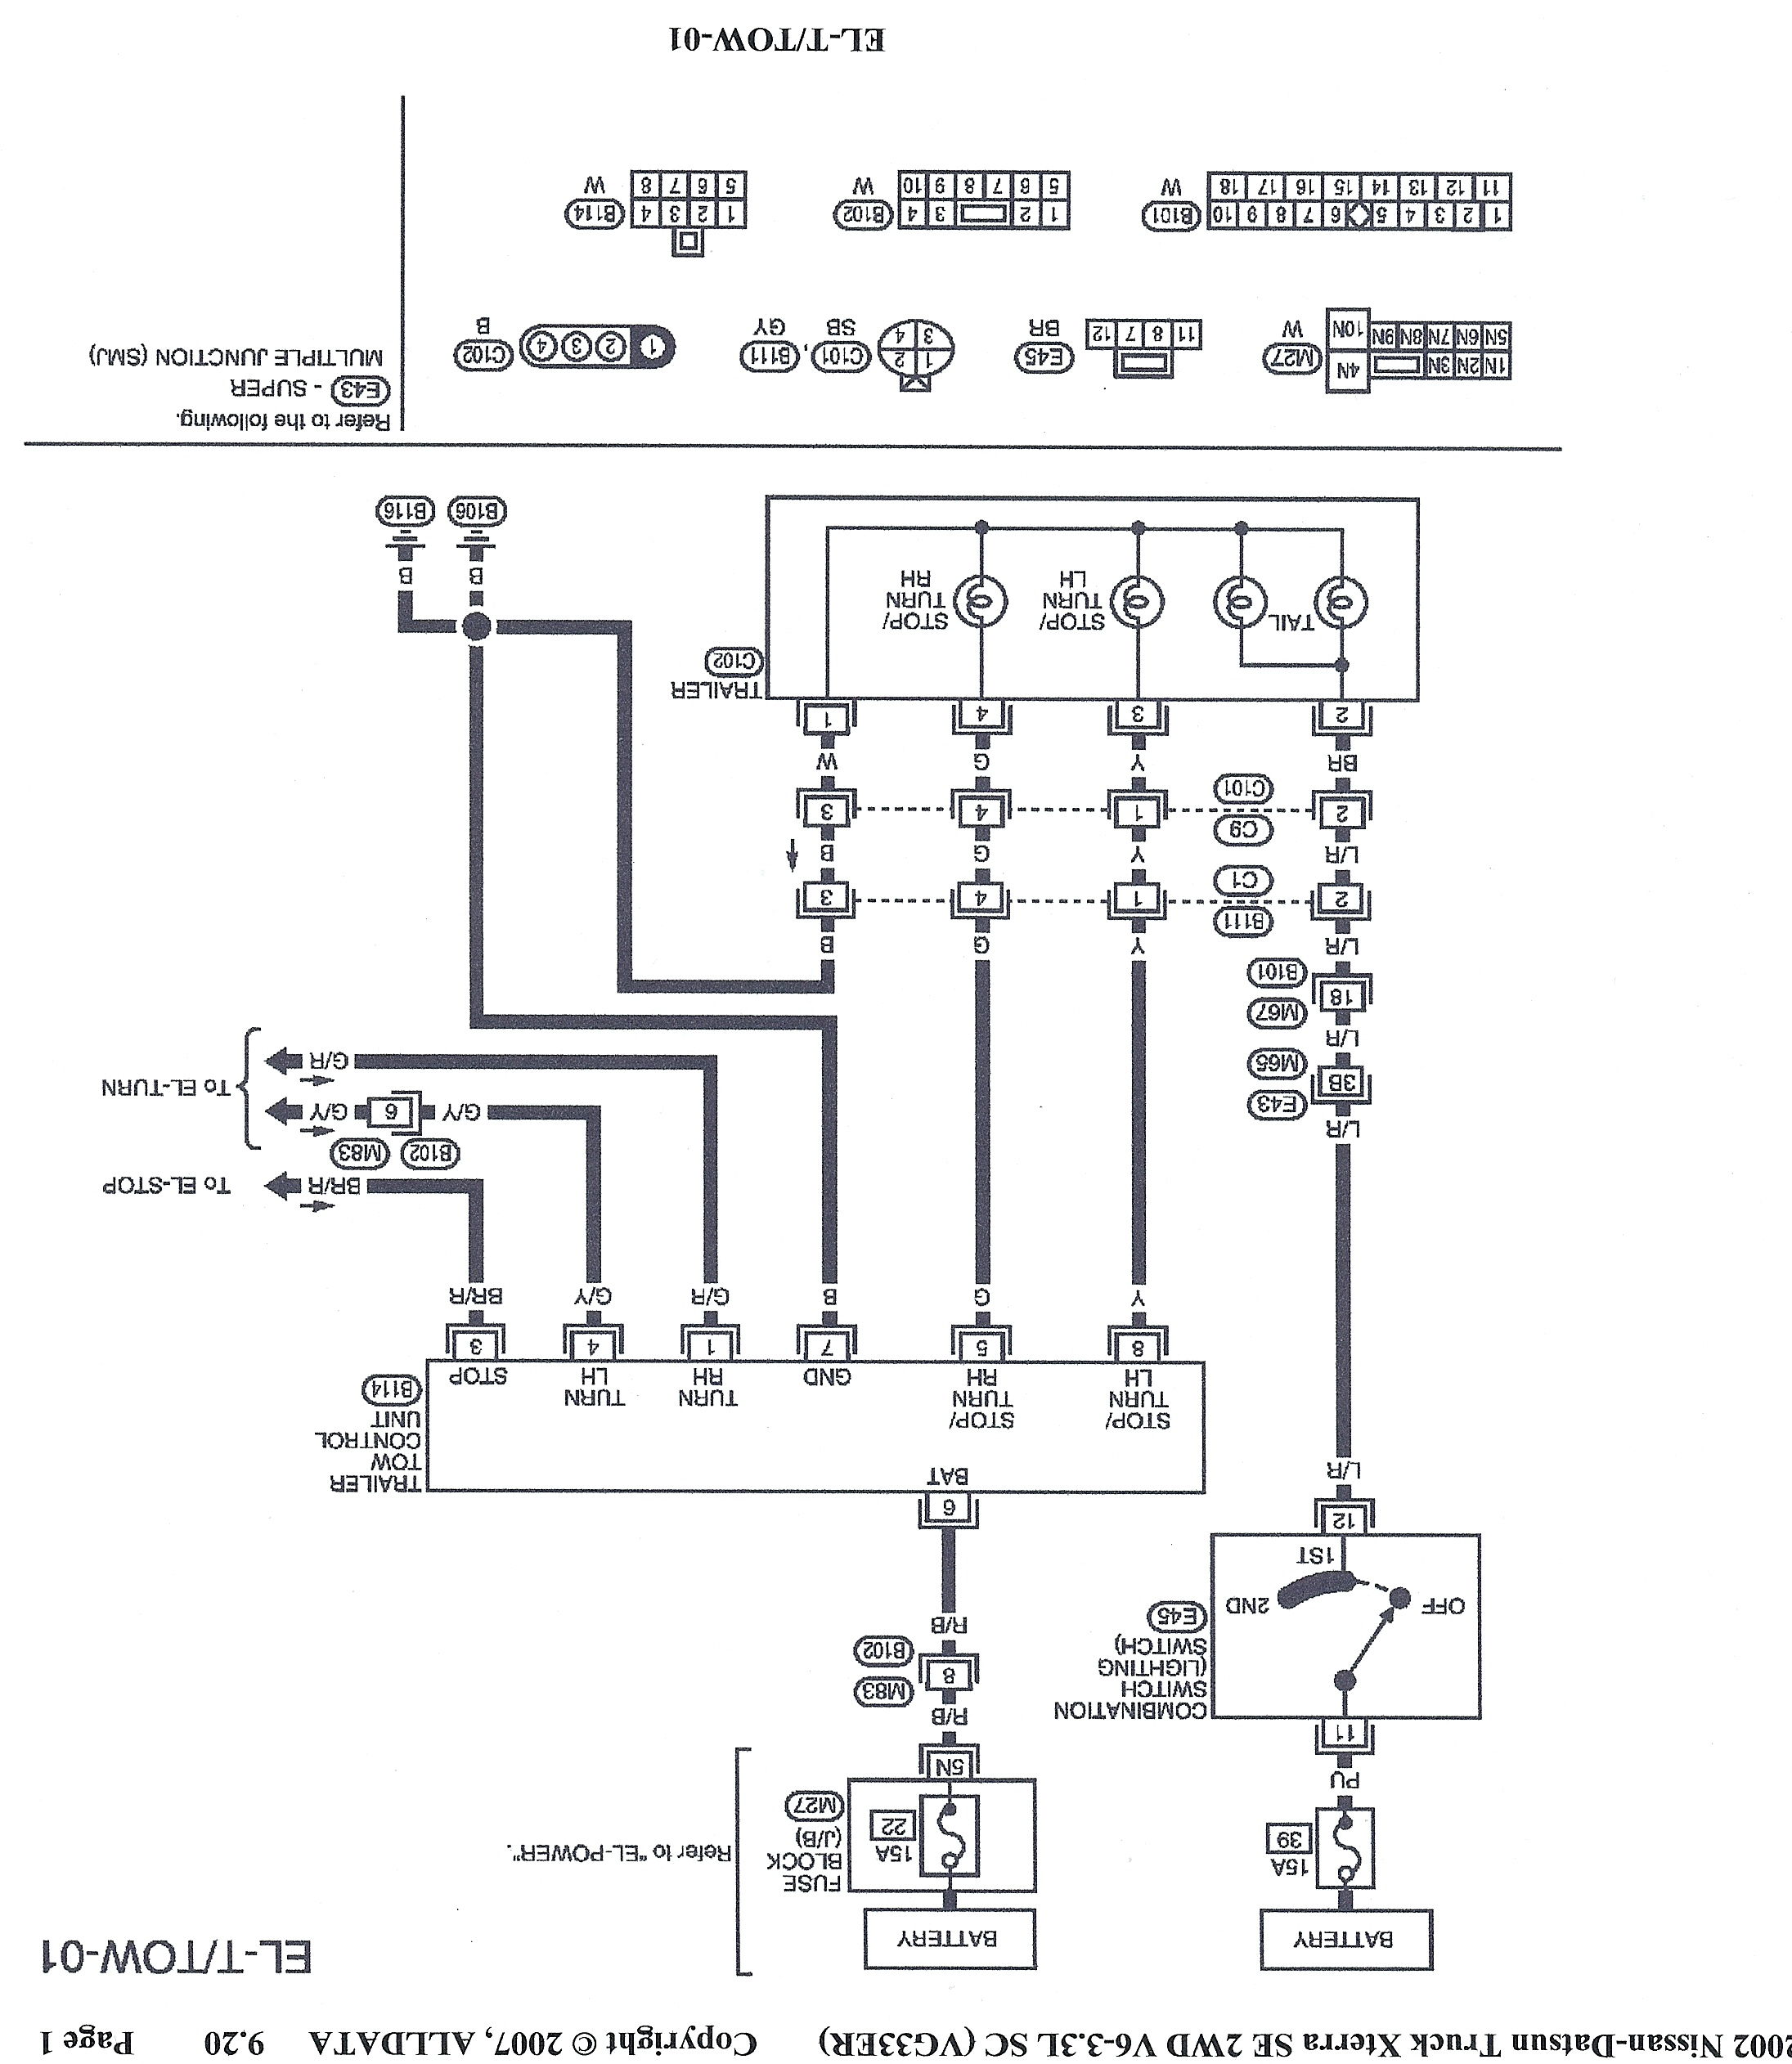 I Need To Hardwire A 4 Flat Trailer Wire Harness To My 2002 Nissan - Nissan Trailer Wiring Diagram